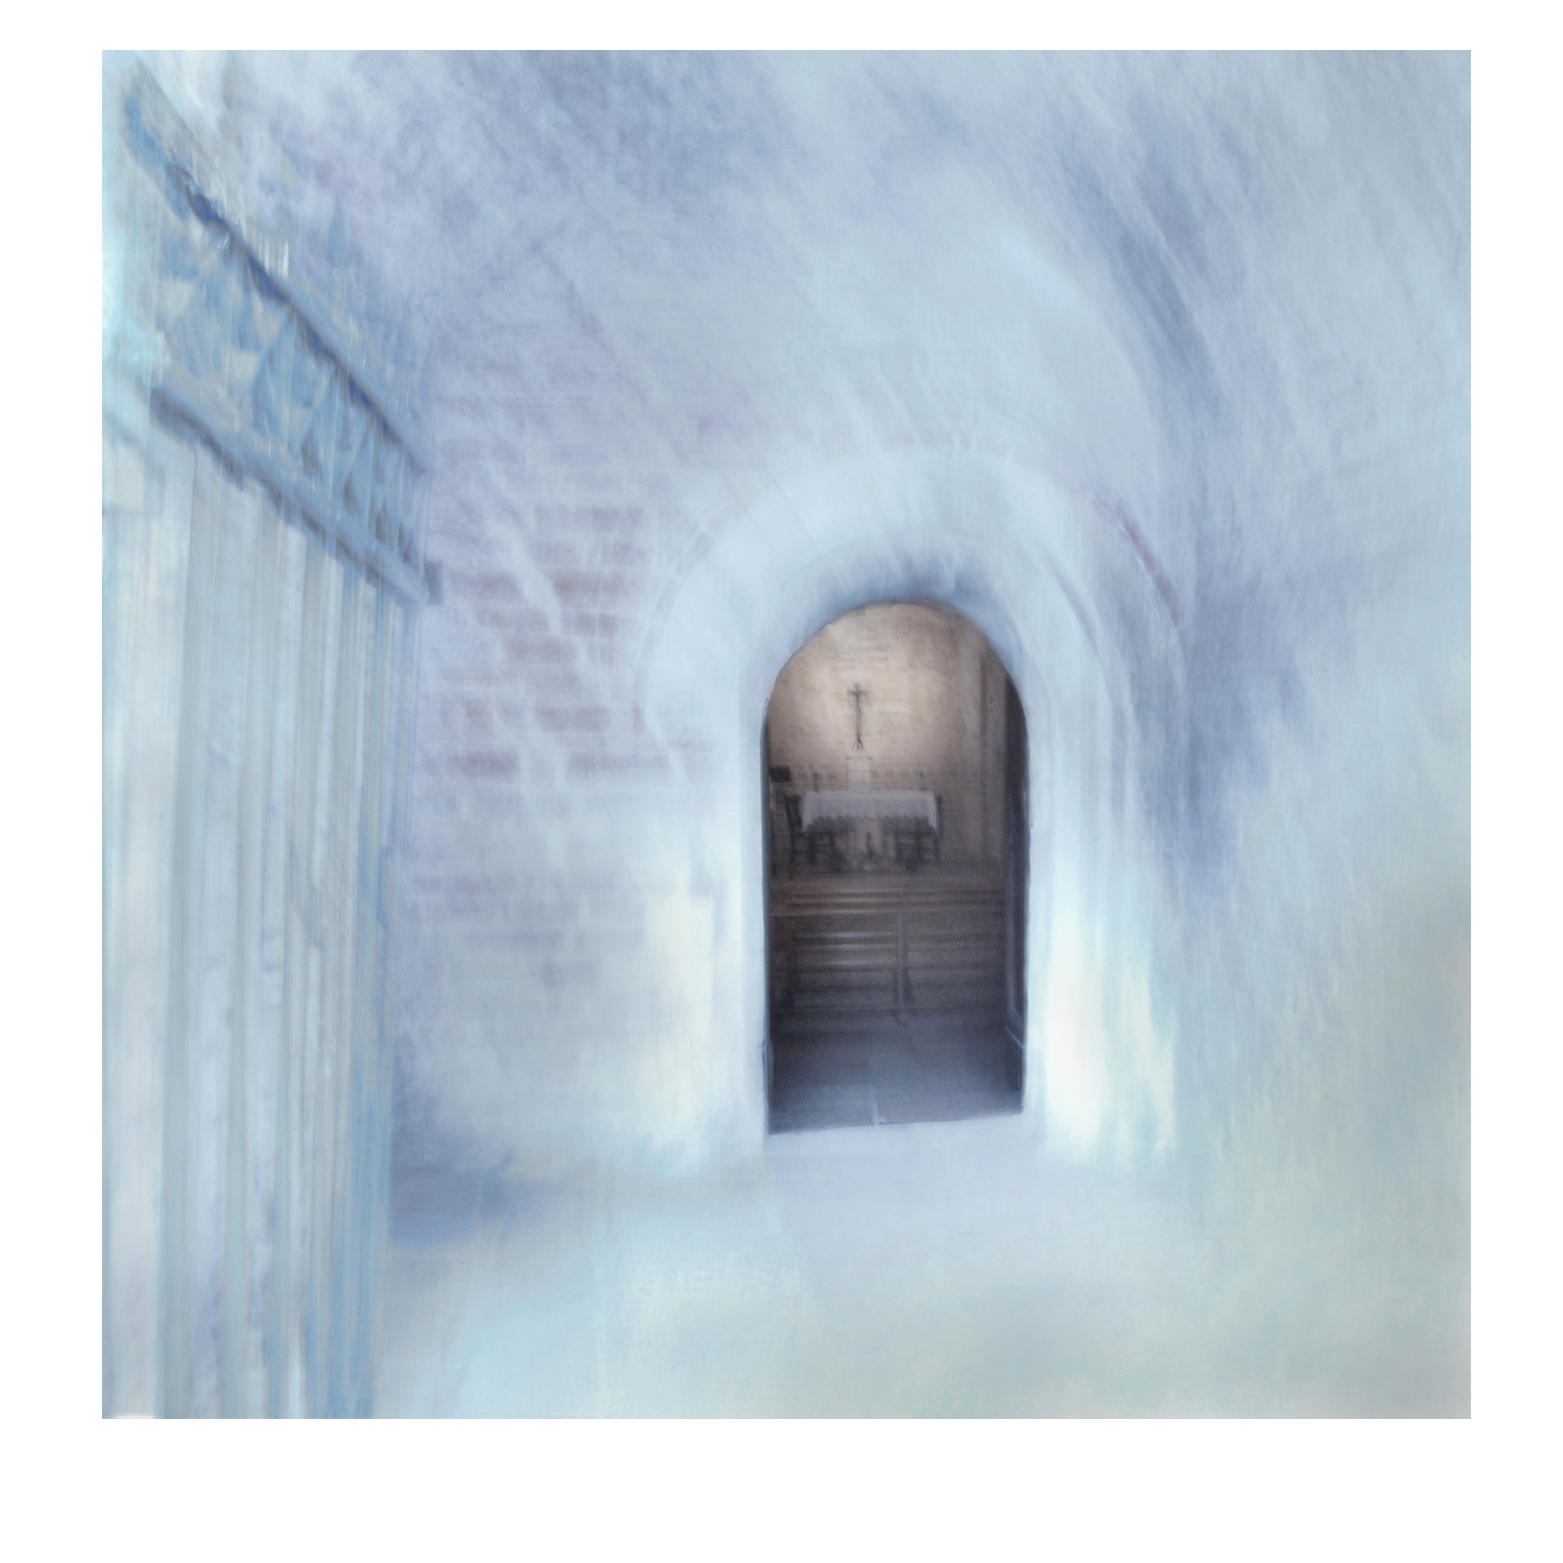 ENTRANCE TO THE CHURCH, web.png